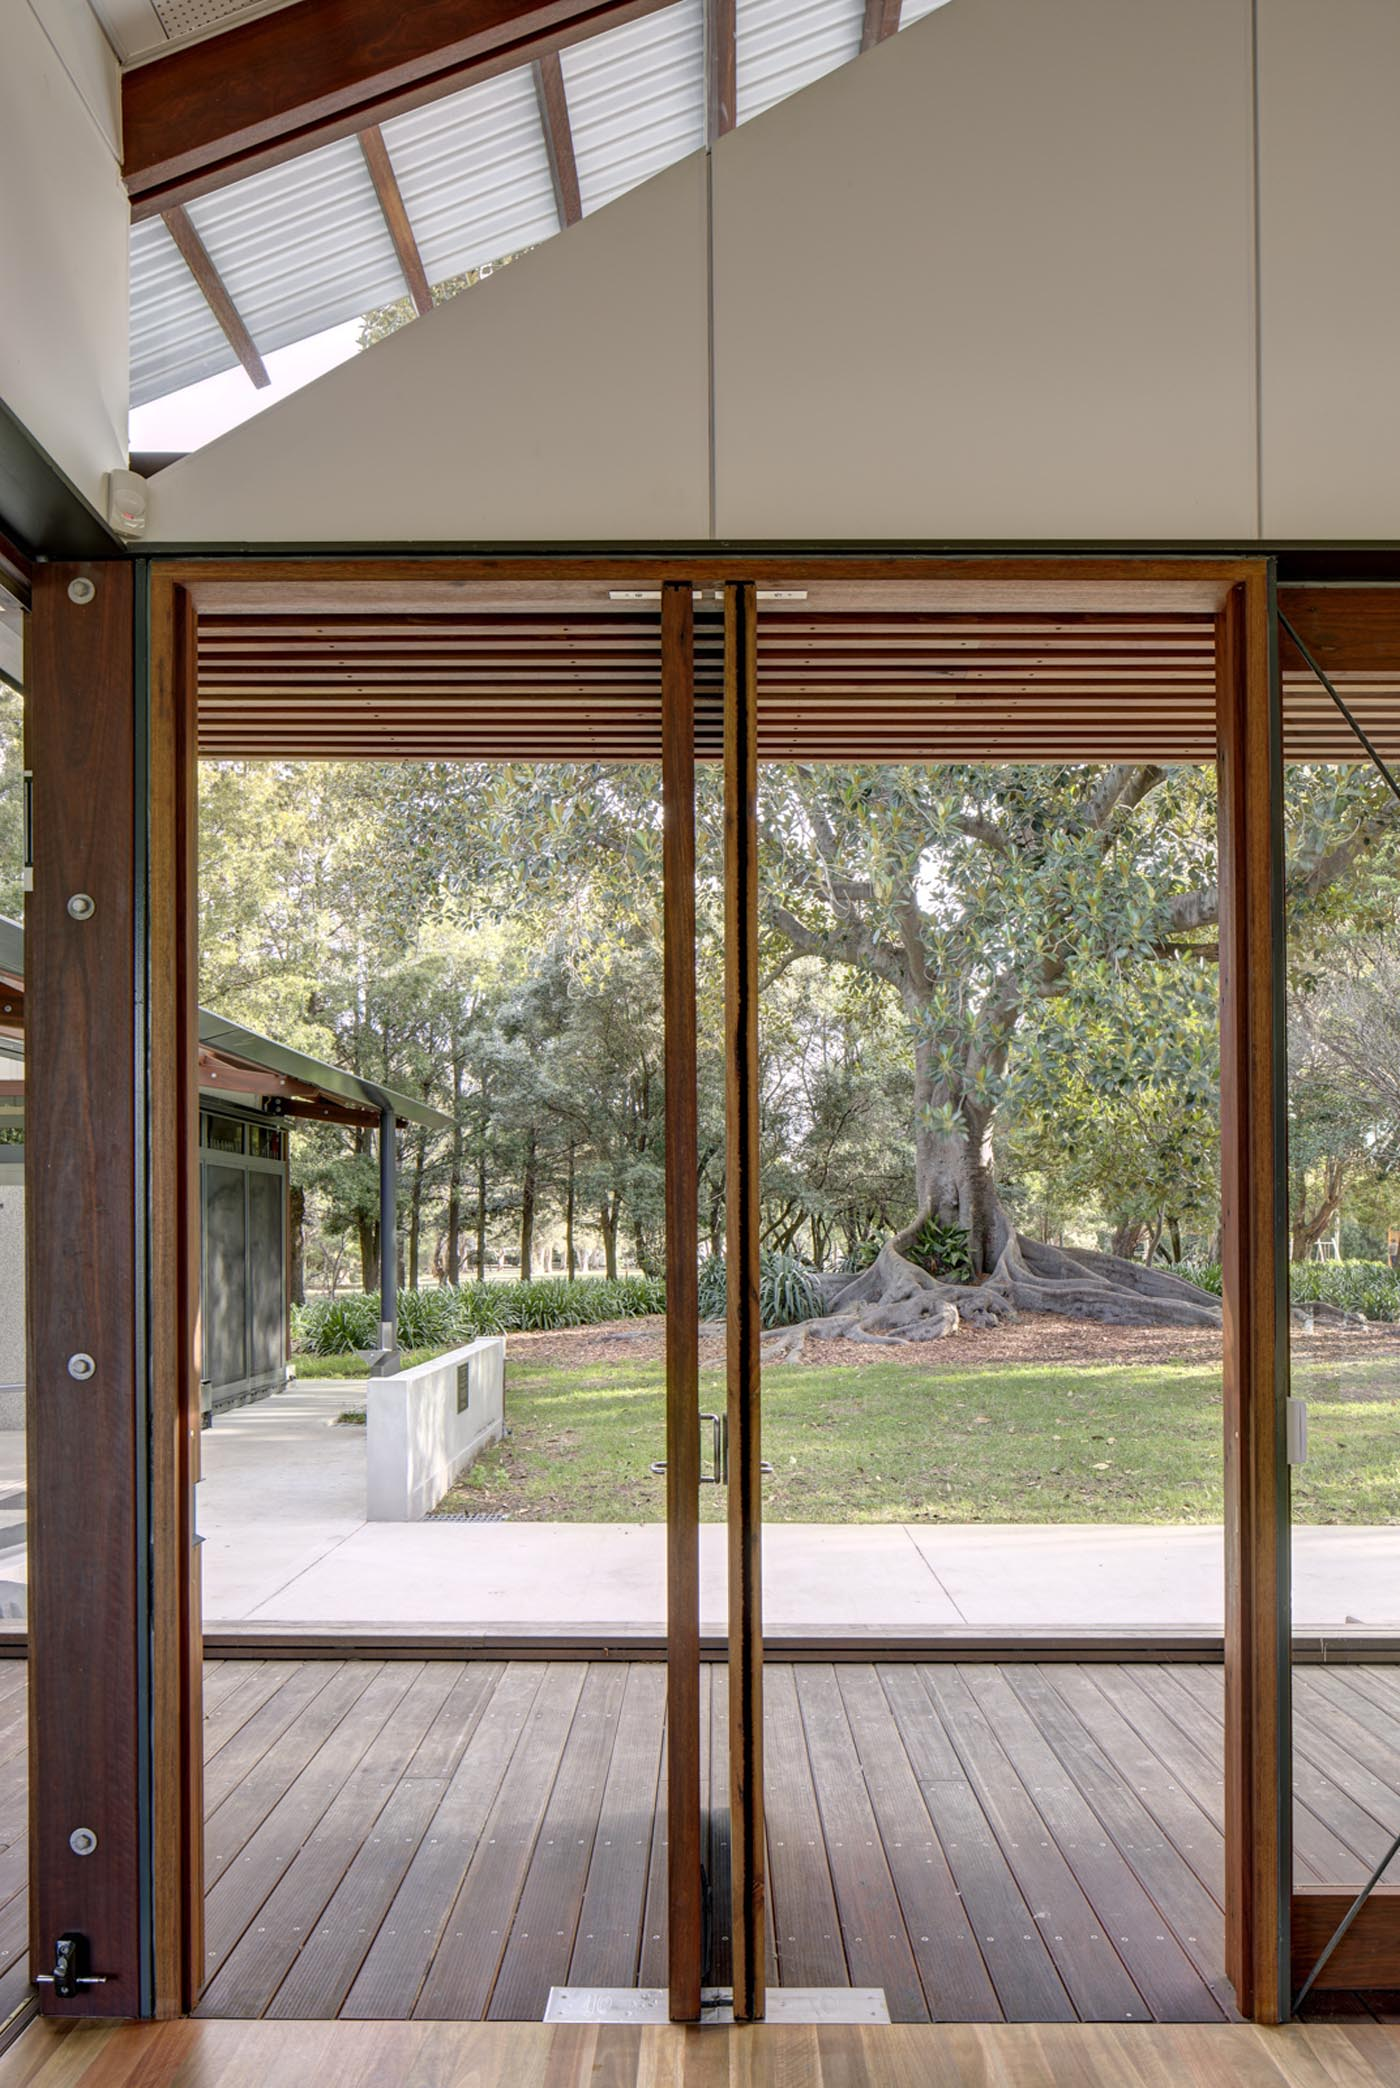 Cabarita Park Conservatory by award winning public architectural firm Sam Crawford Architects. Timber framed doors open to rear